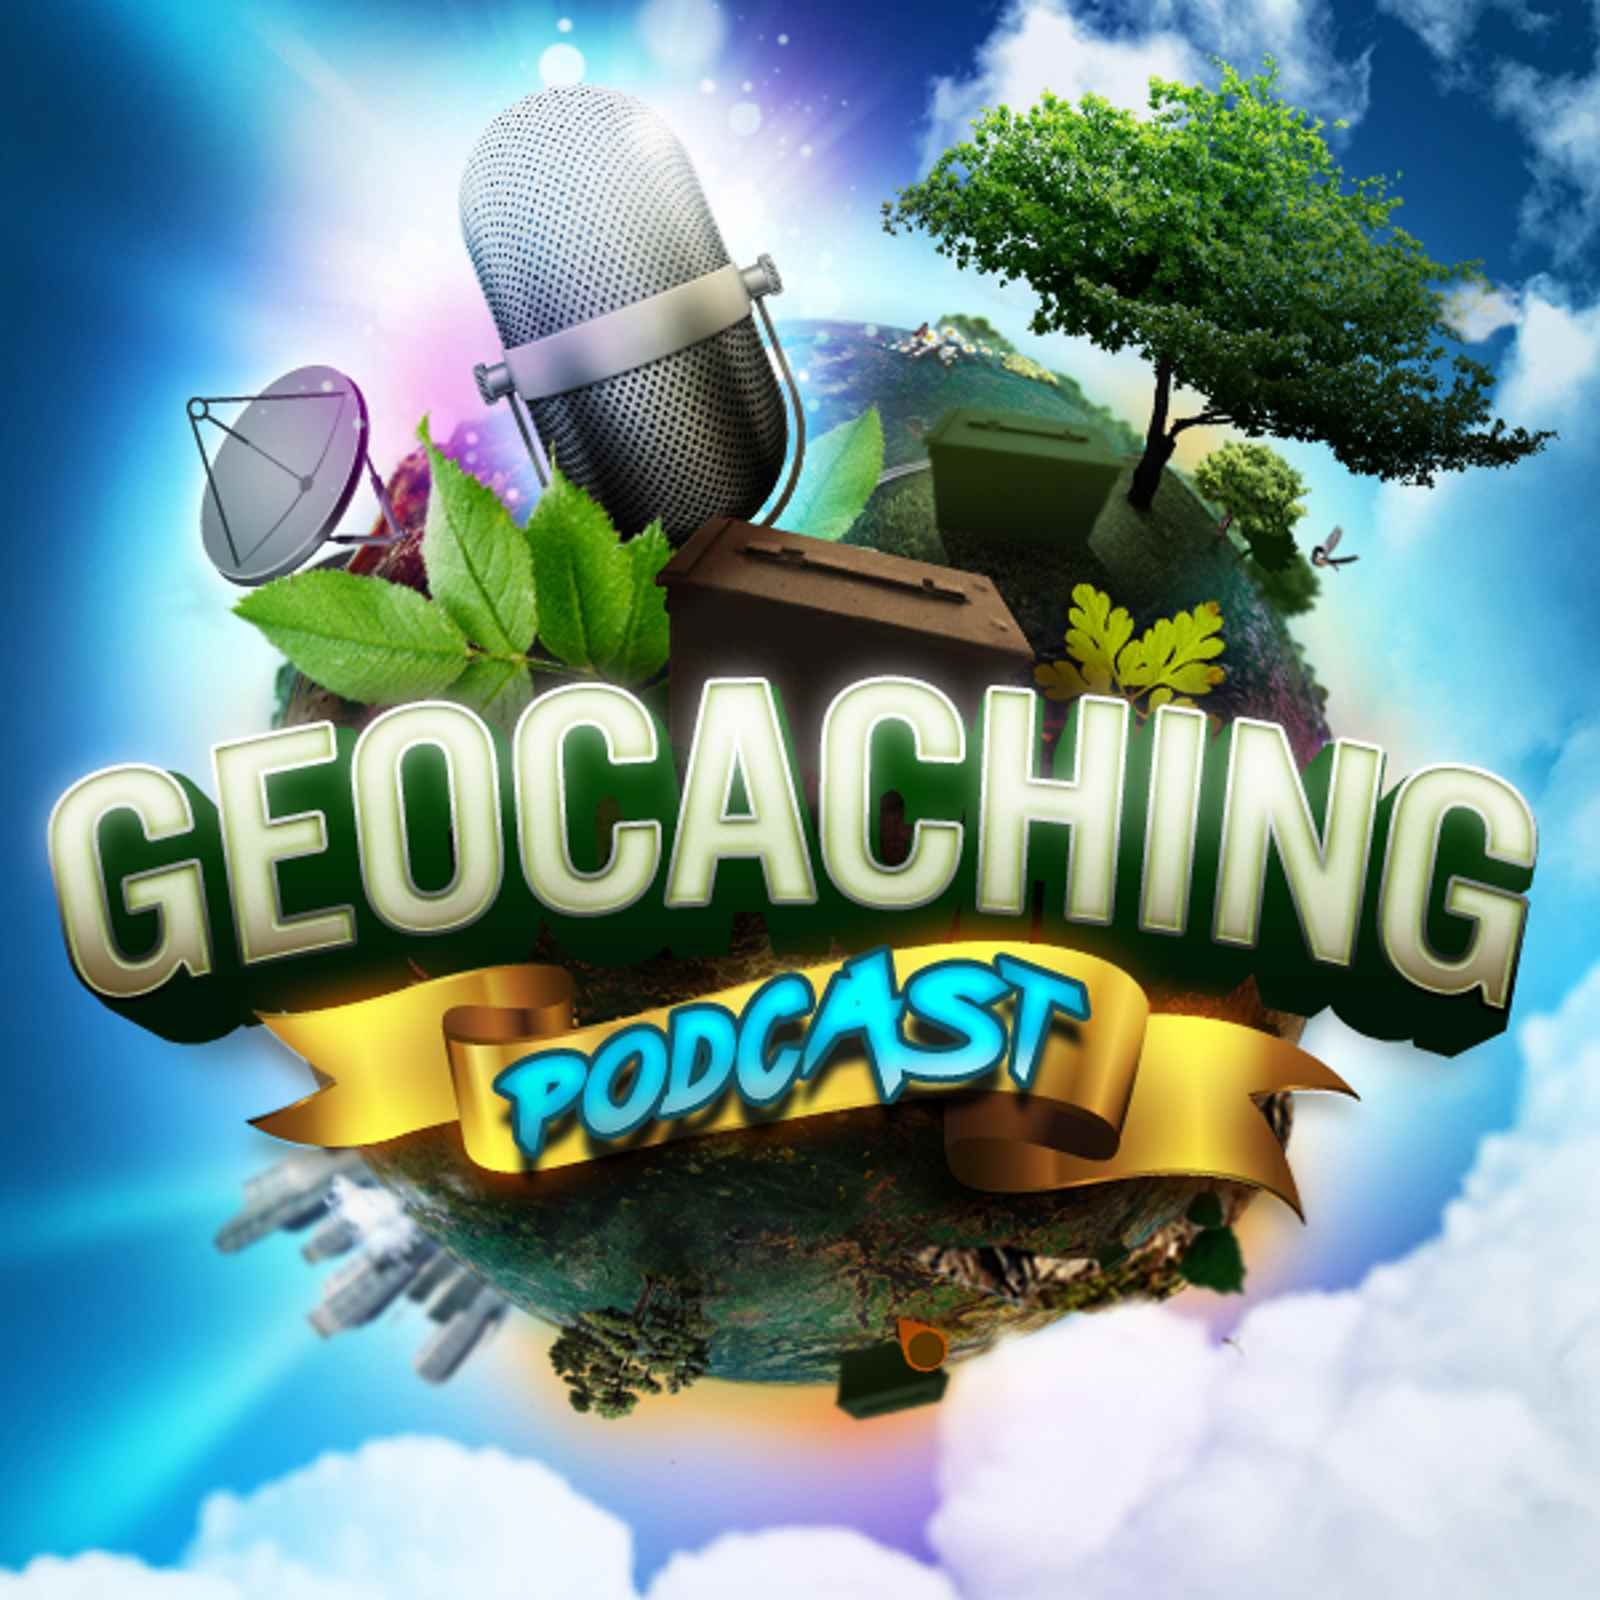 The Geocaching Podcast